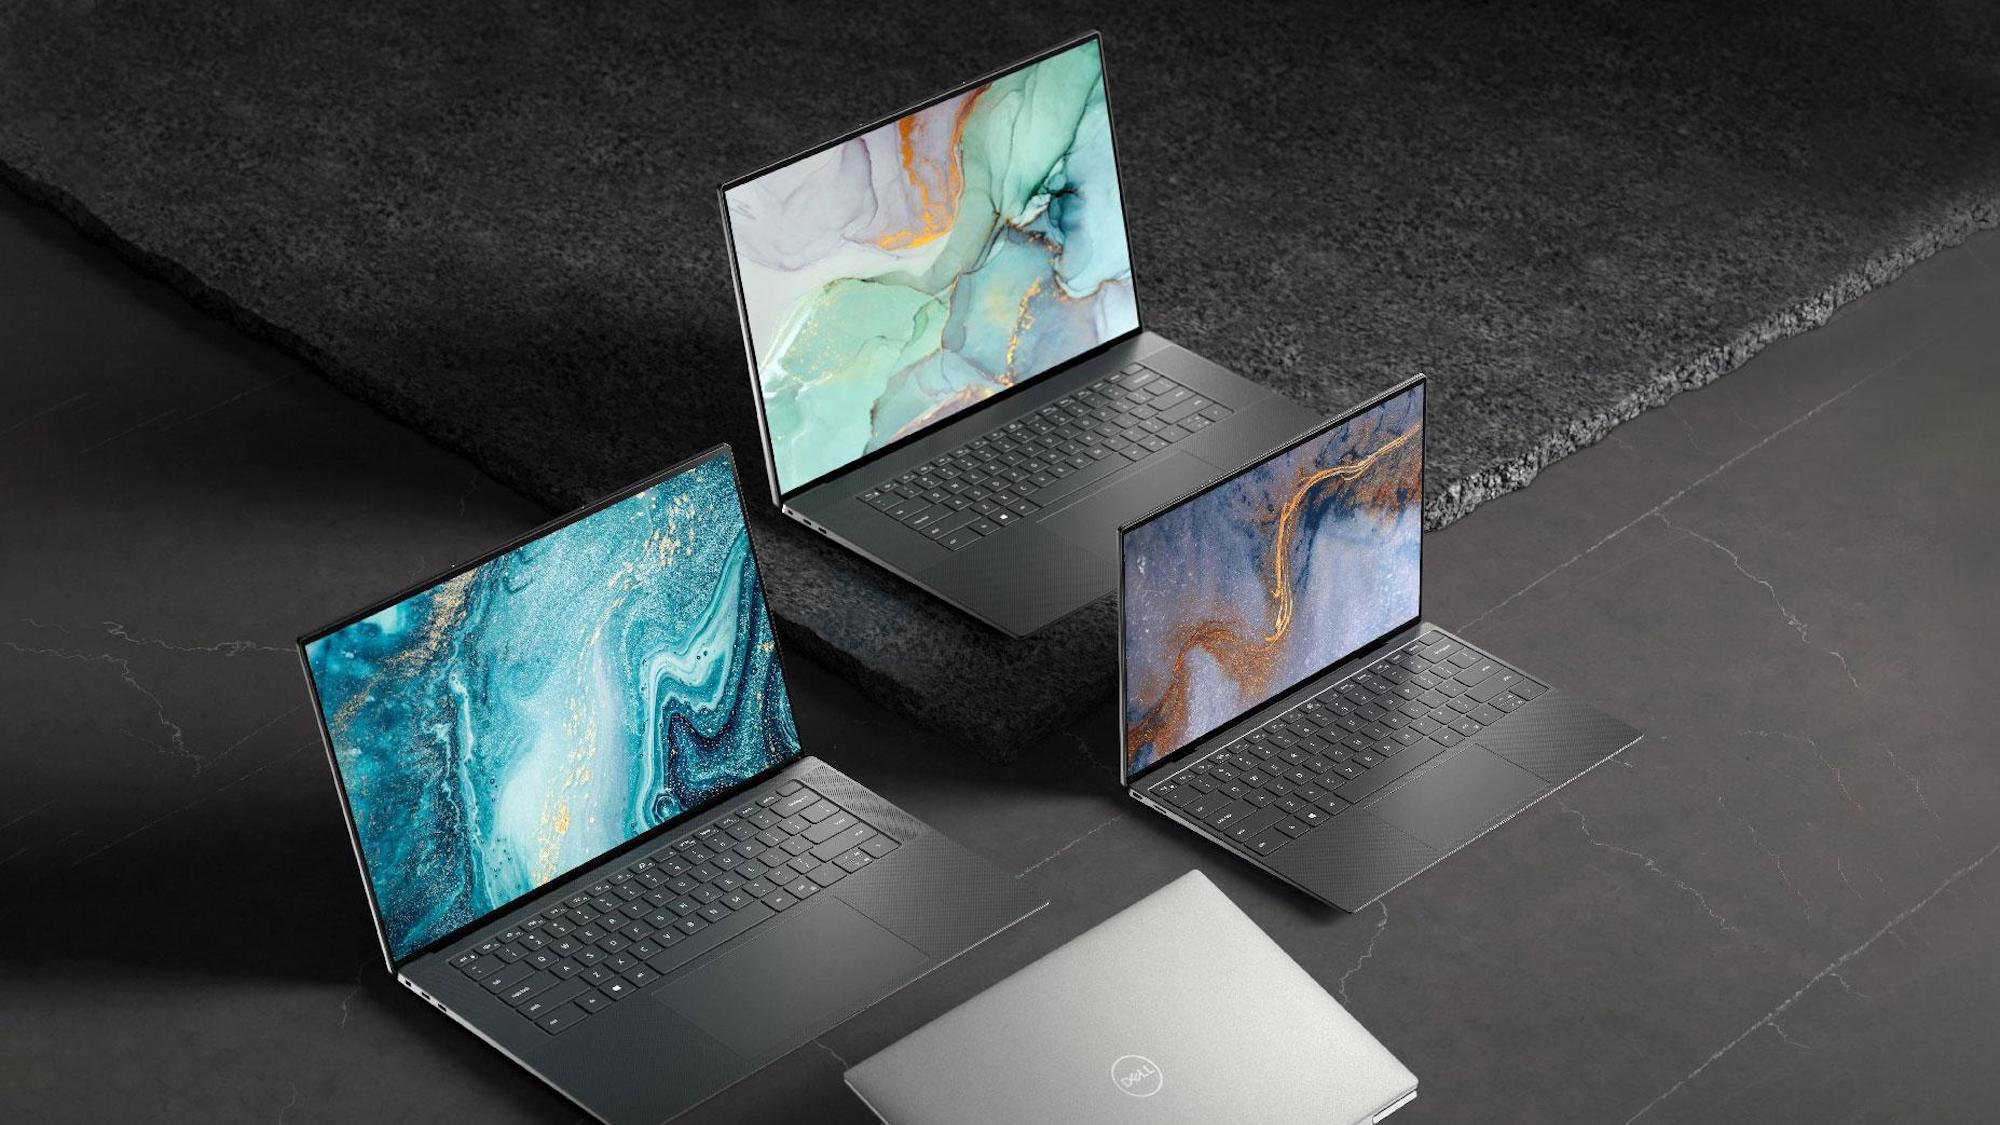 Dell New XPS 17 Powerful Laptop